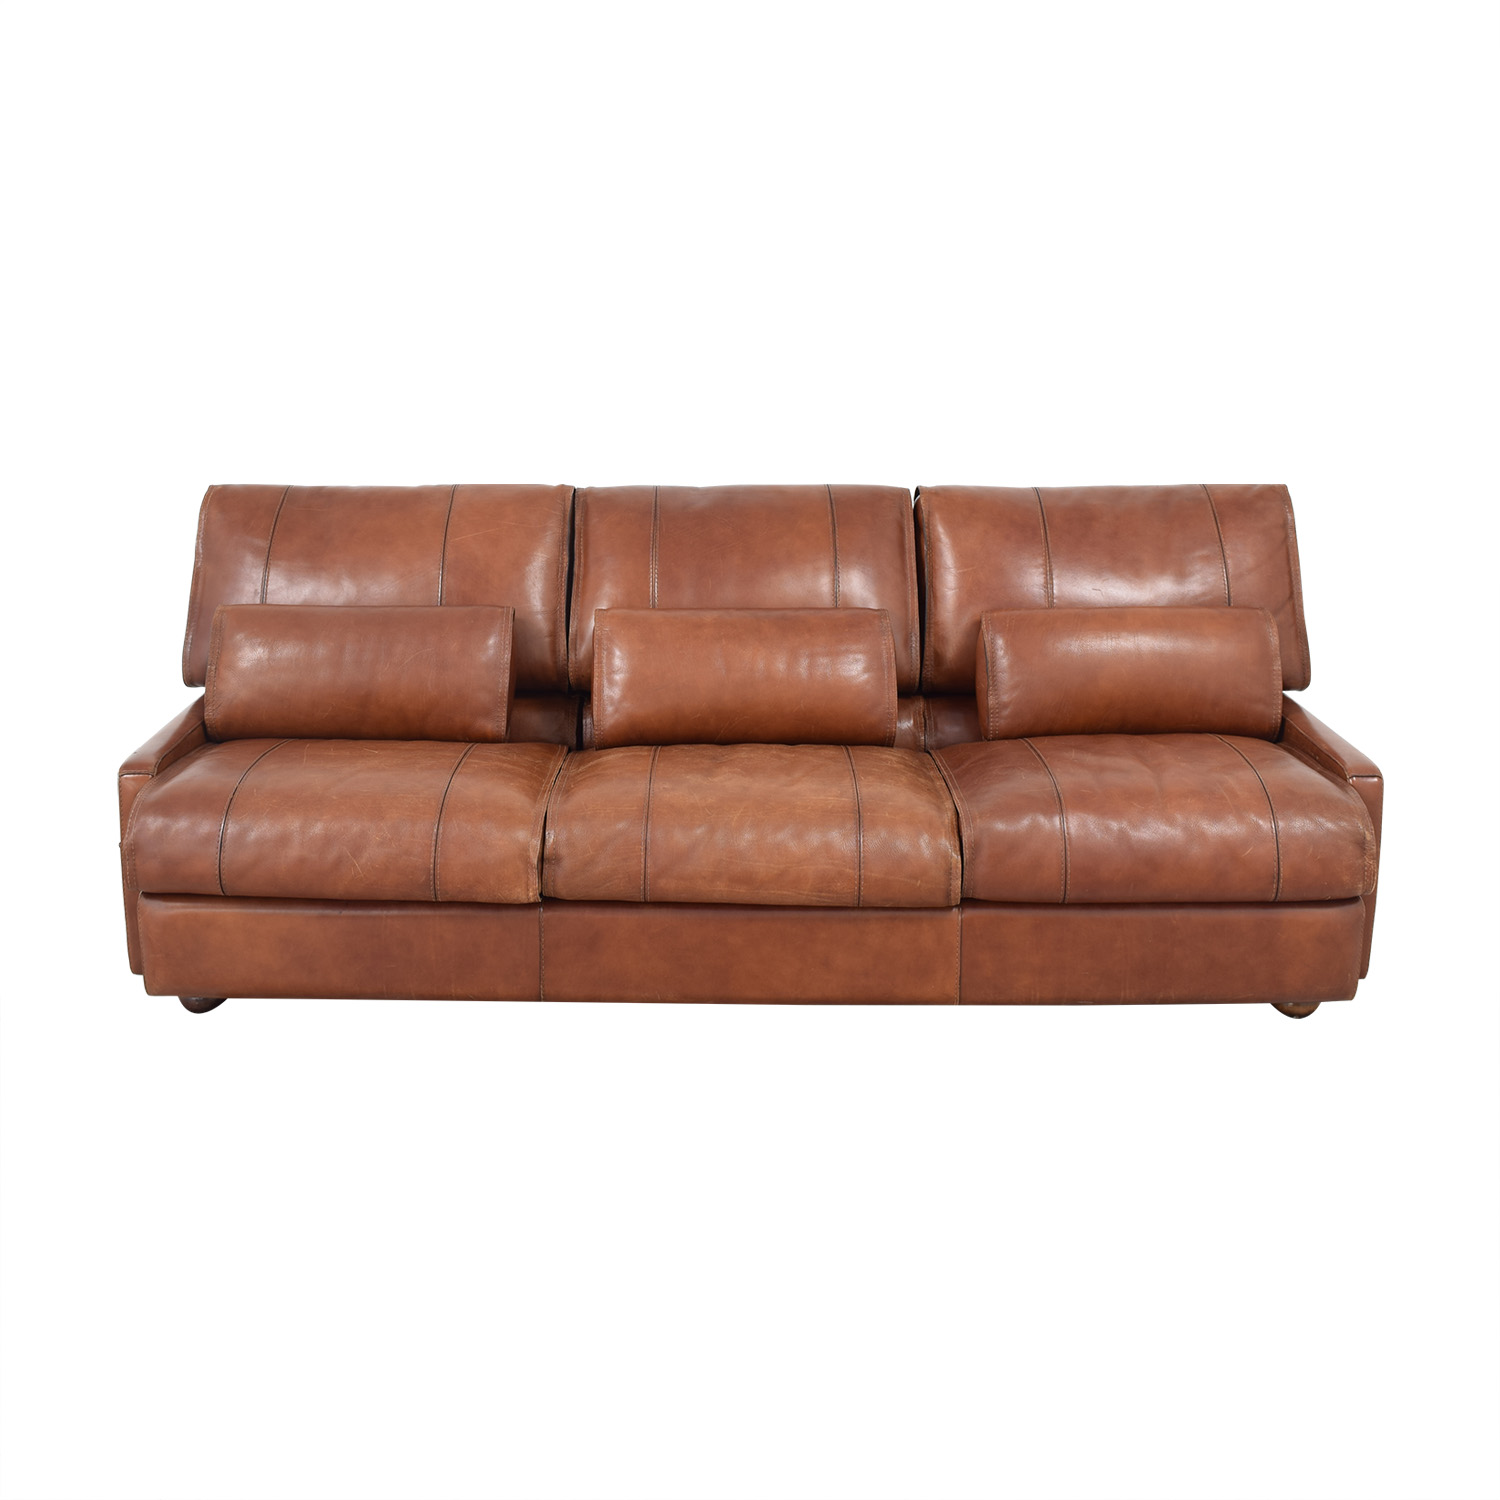 Modern Italian Leather Sofa brown